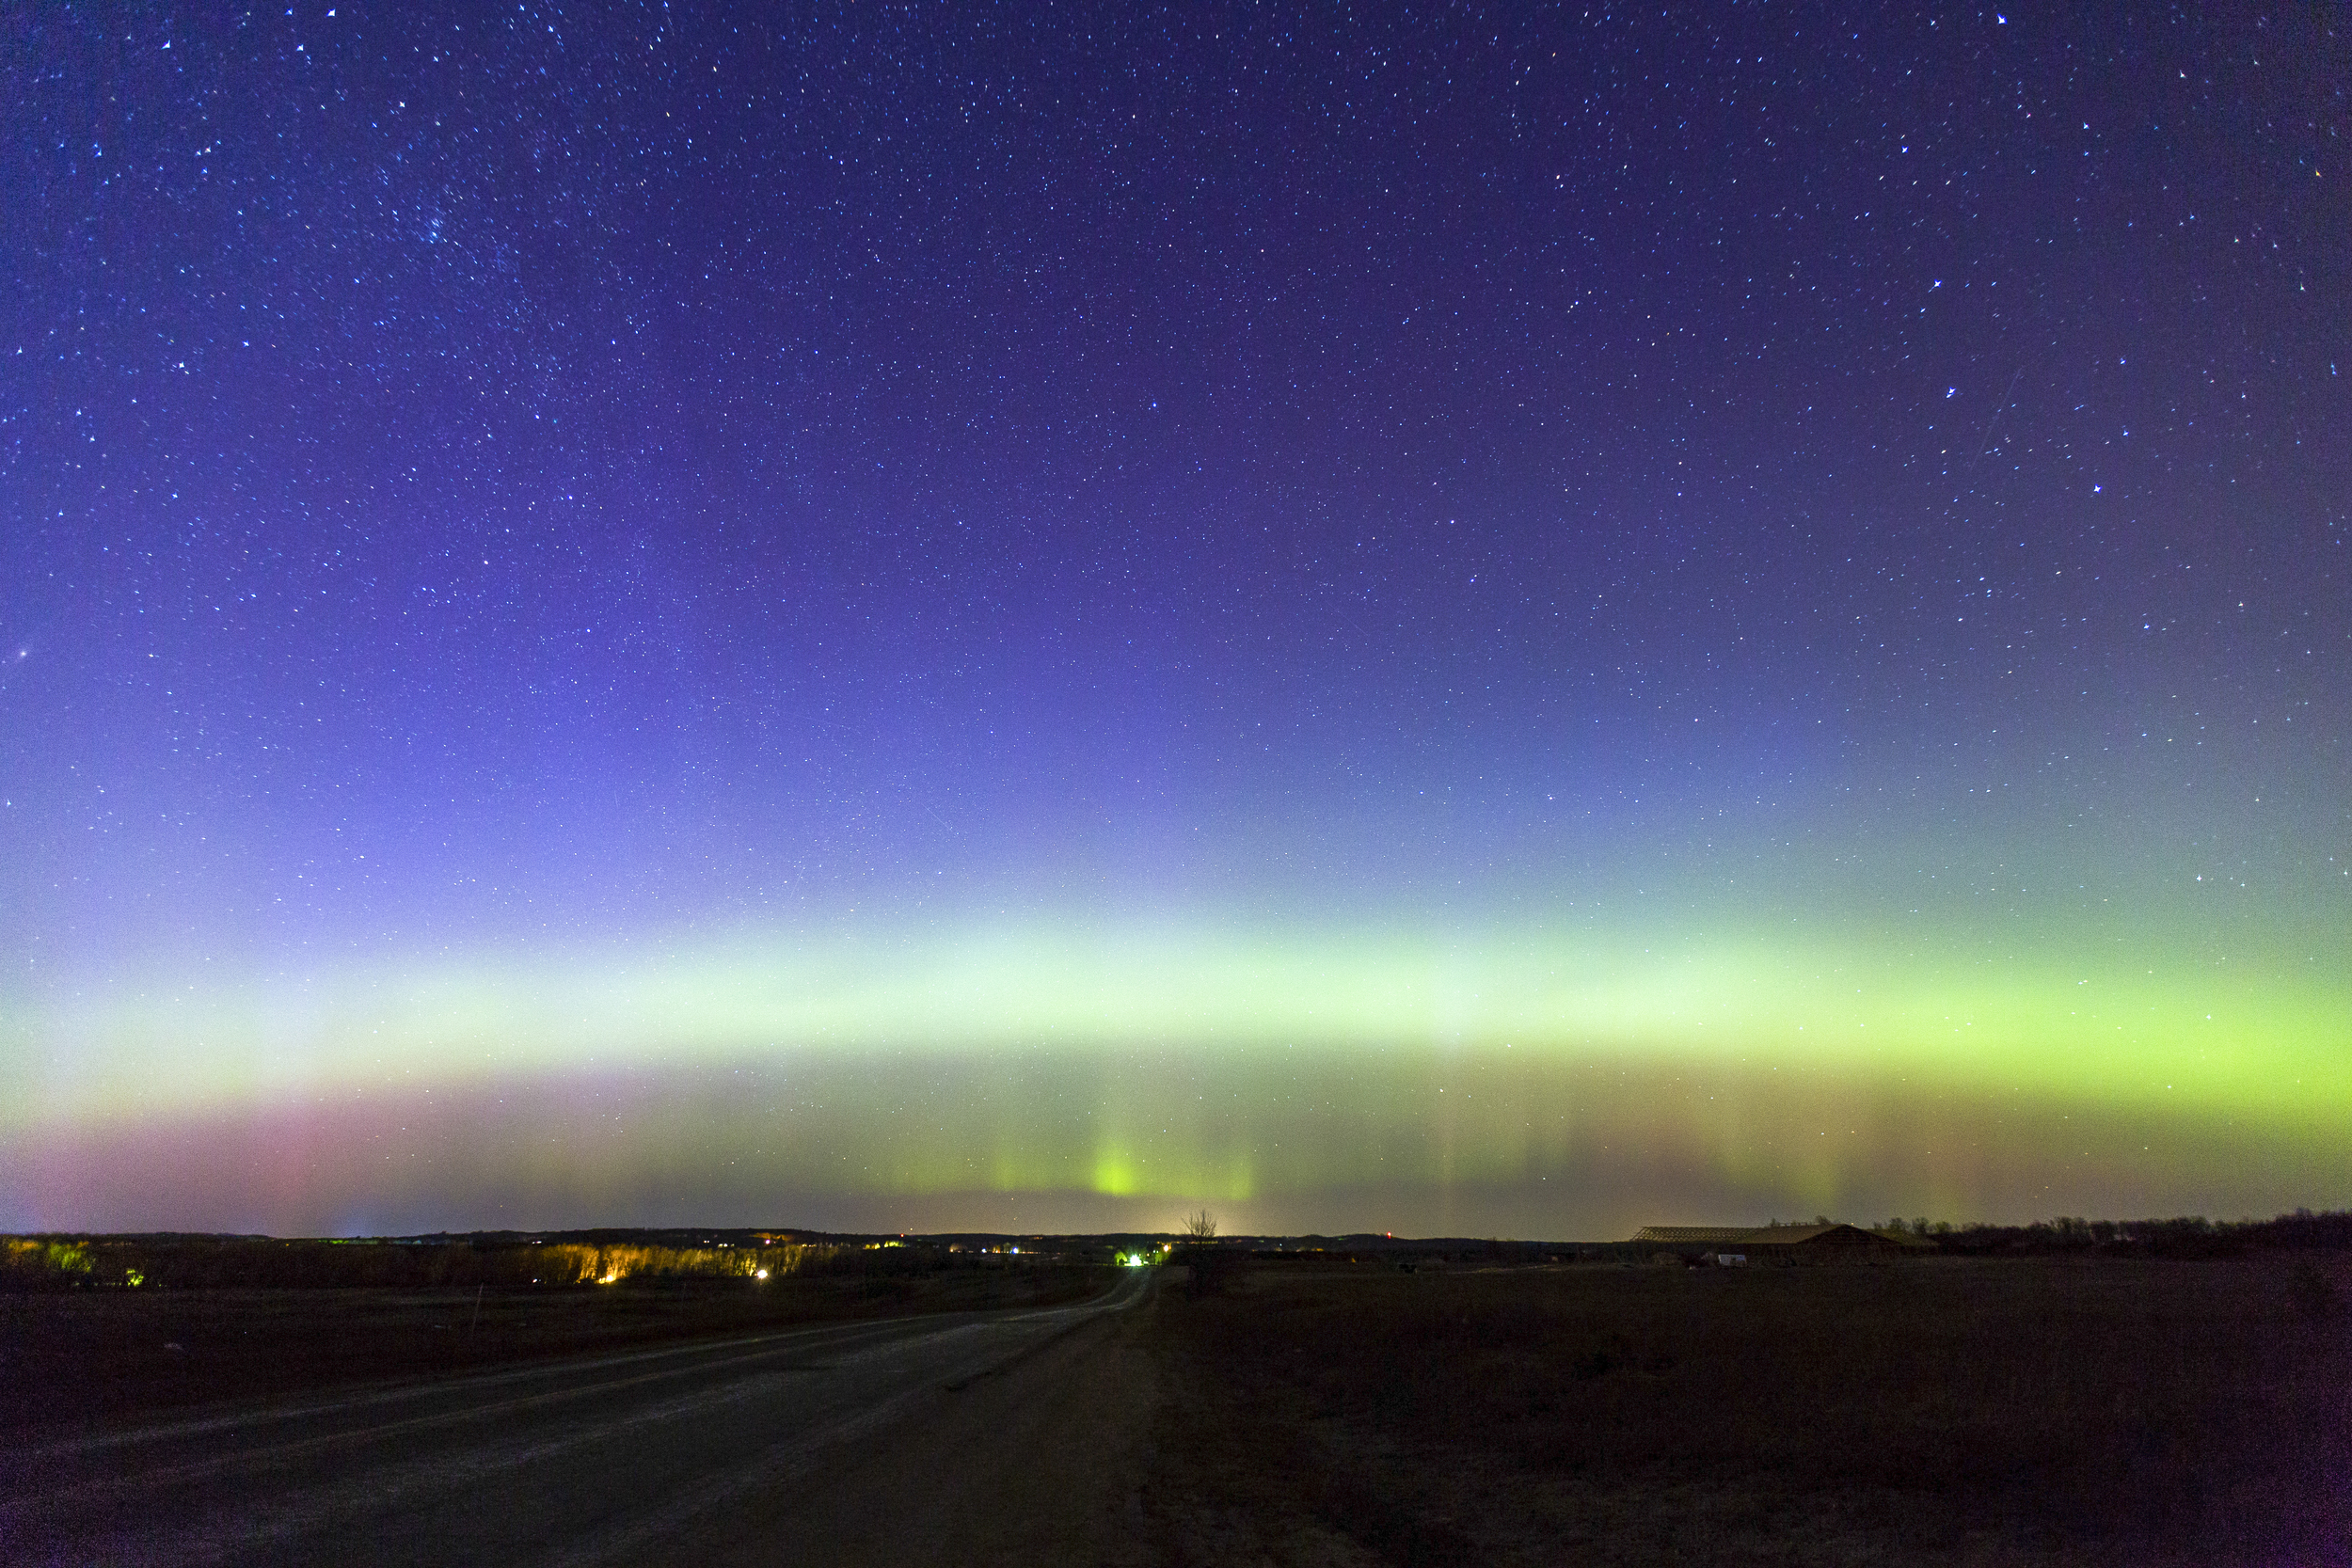 LIGHTS OVER HERSEY: I took this image just east of Hersey, Mich. where there is a nice elevation and a lot of open field. The auroral oval was clearly visible just after sunset and curtains of light danced in the sky as the hours passed.